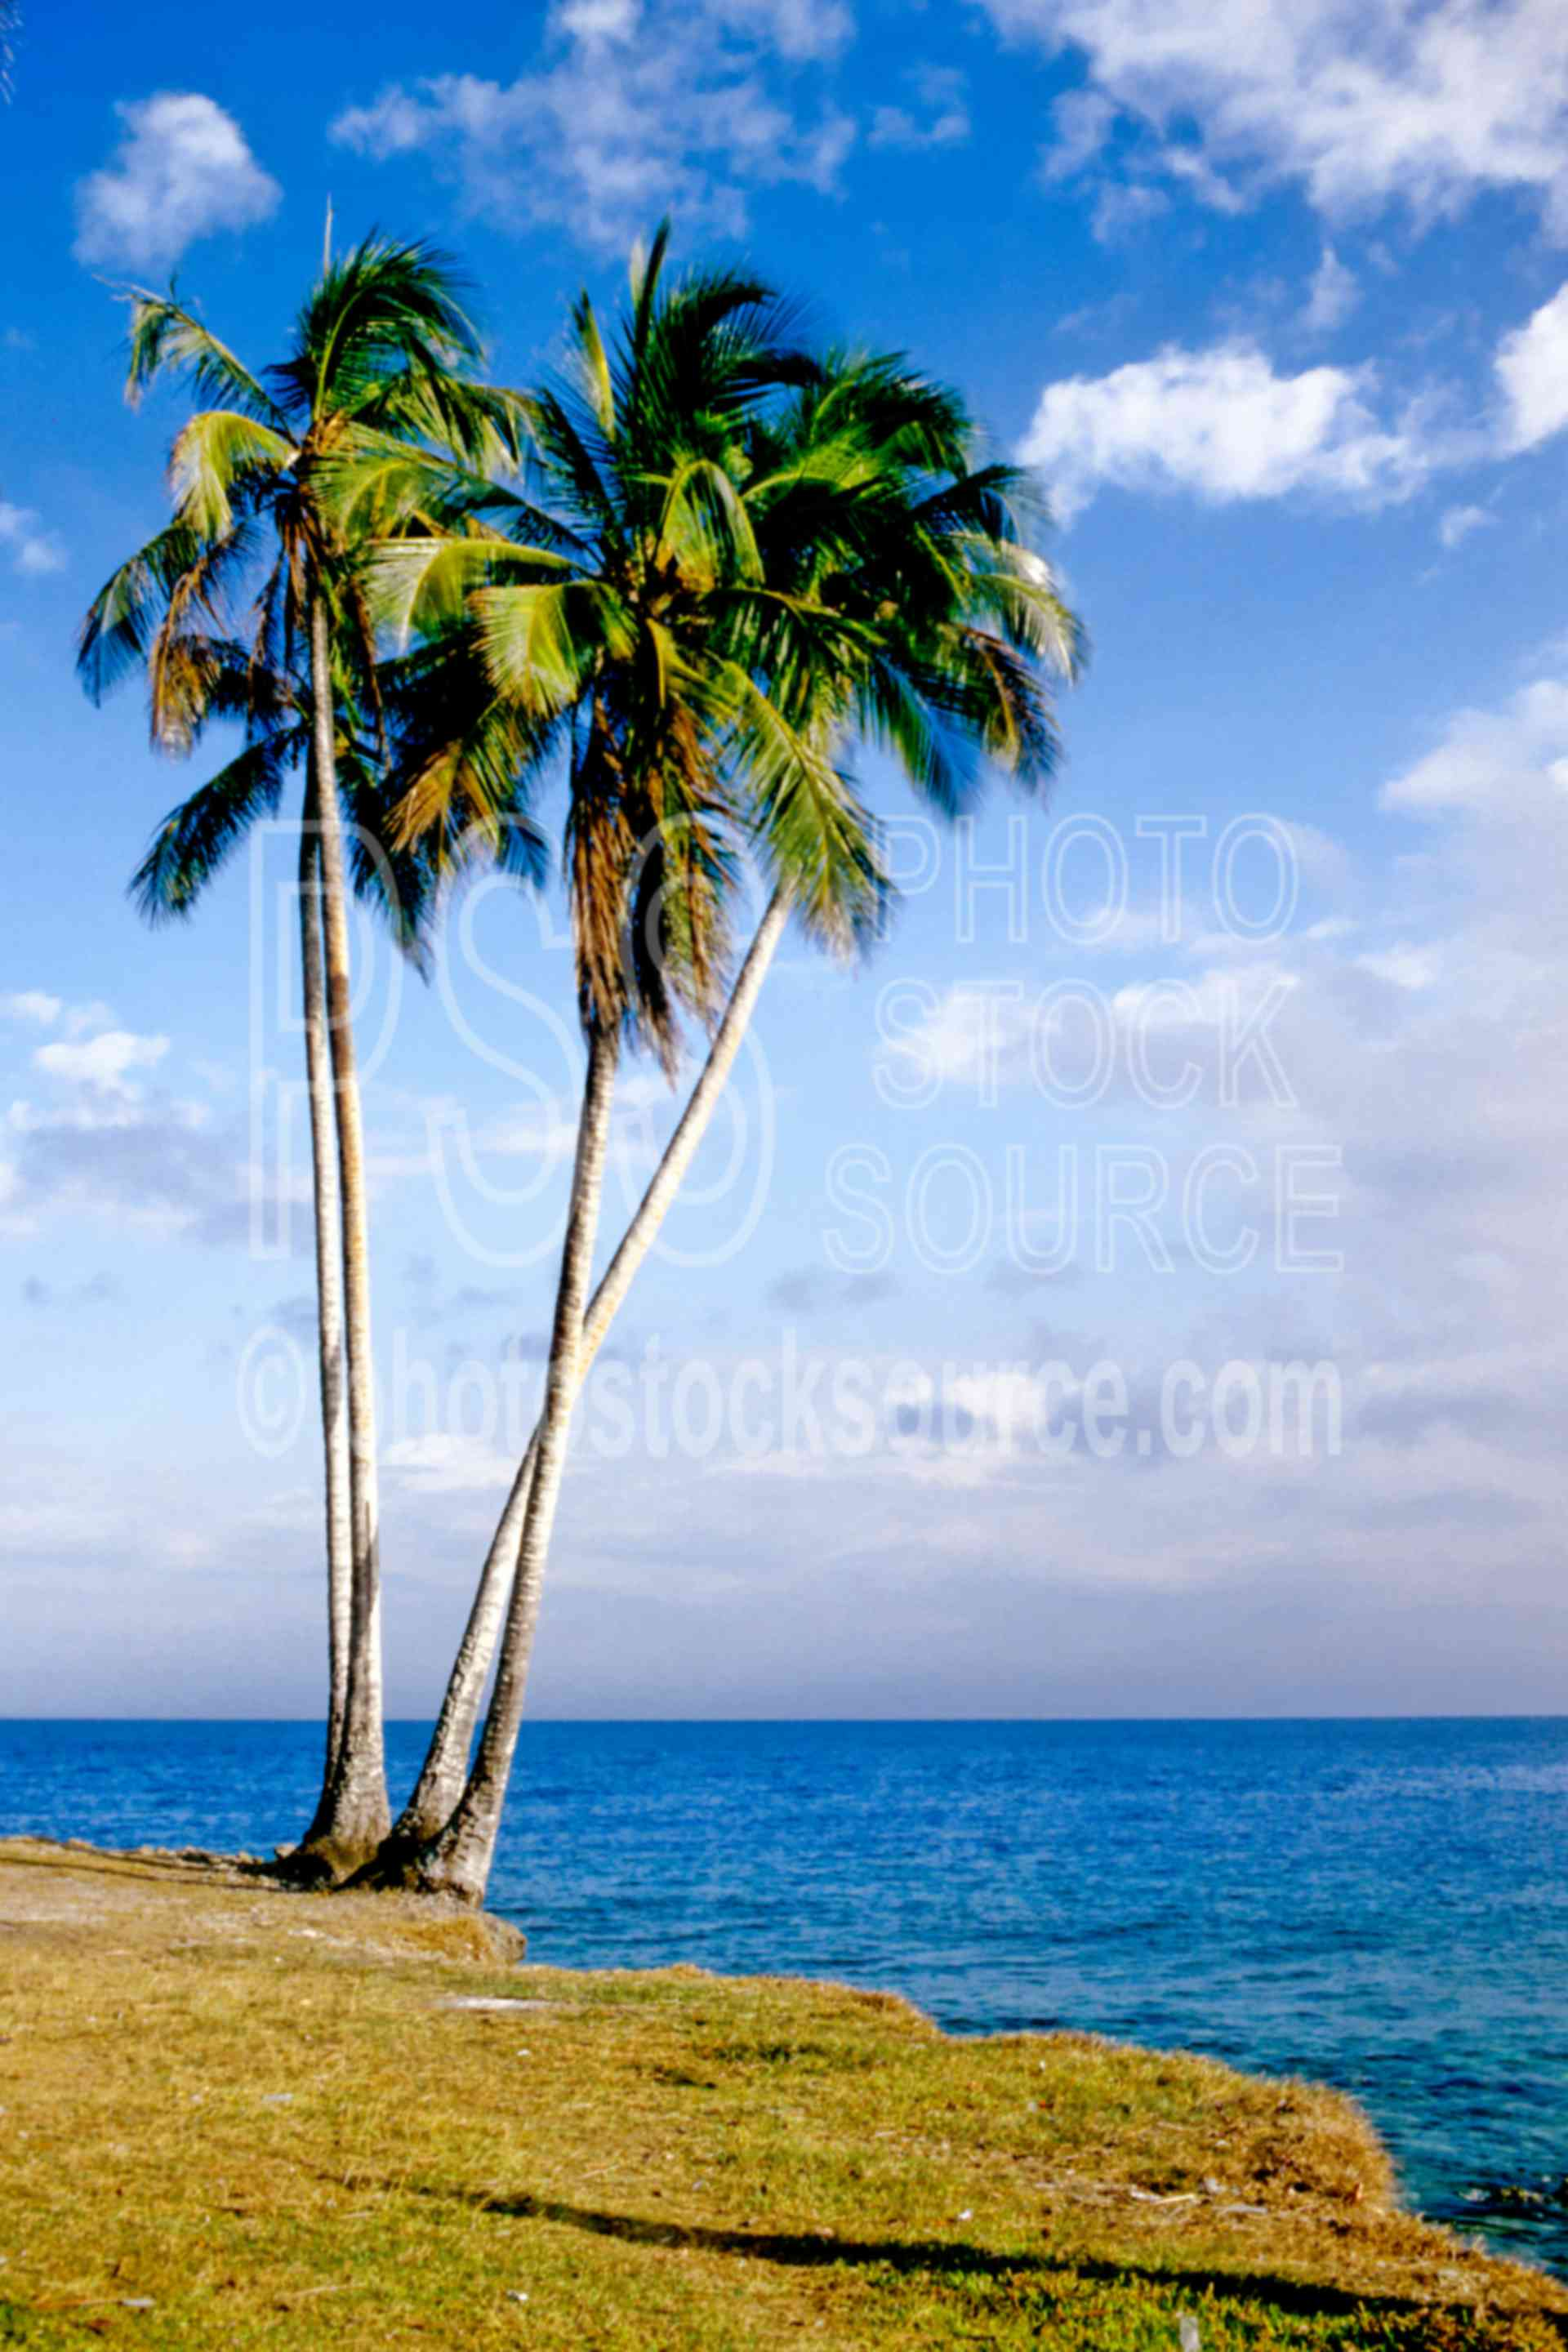 Palm Trees,palm,seas,shore,tree,water,seascapes,coast